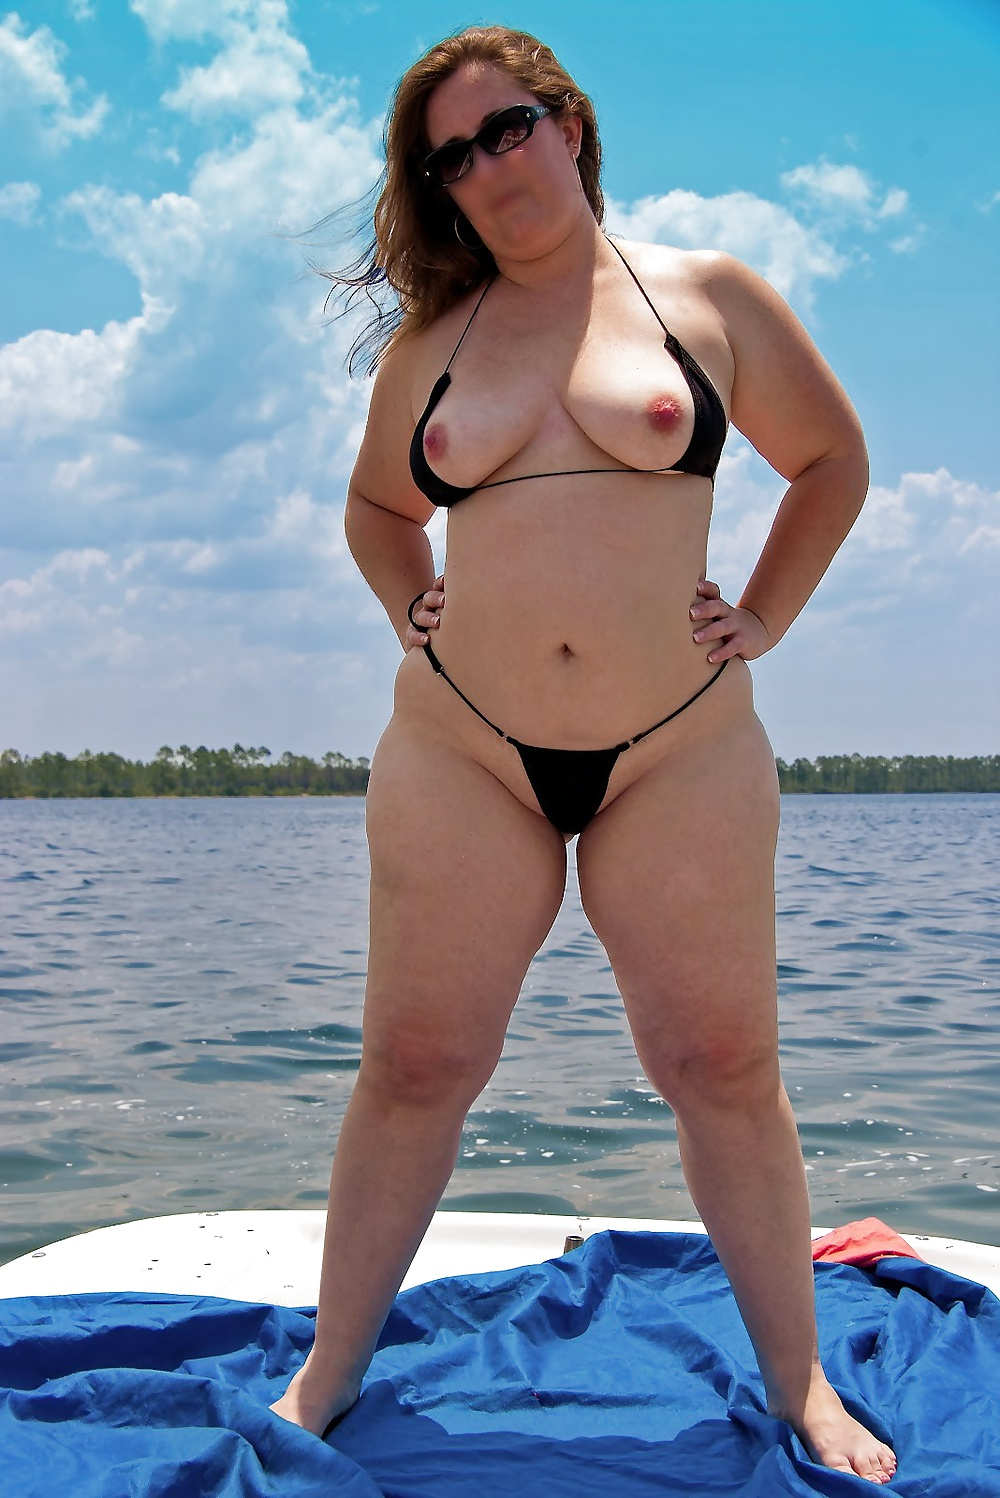 boy-ass-plump-mature-bikini-all-naked